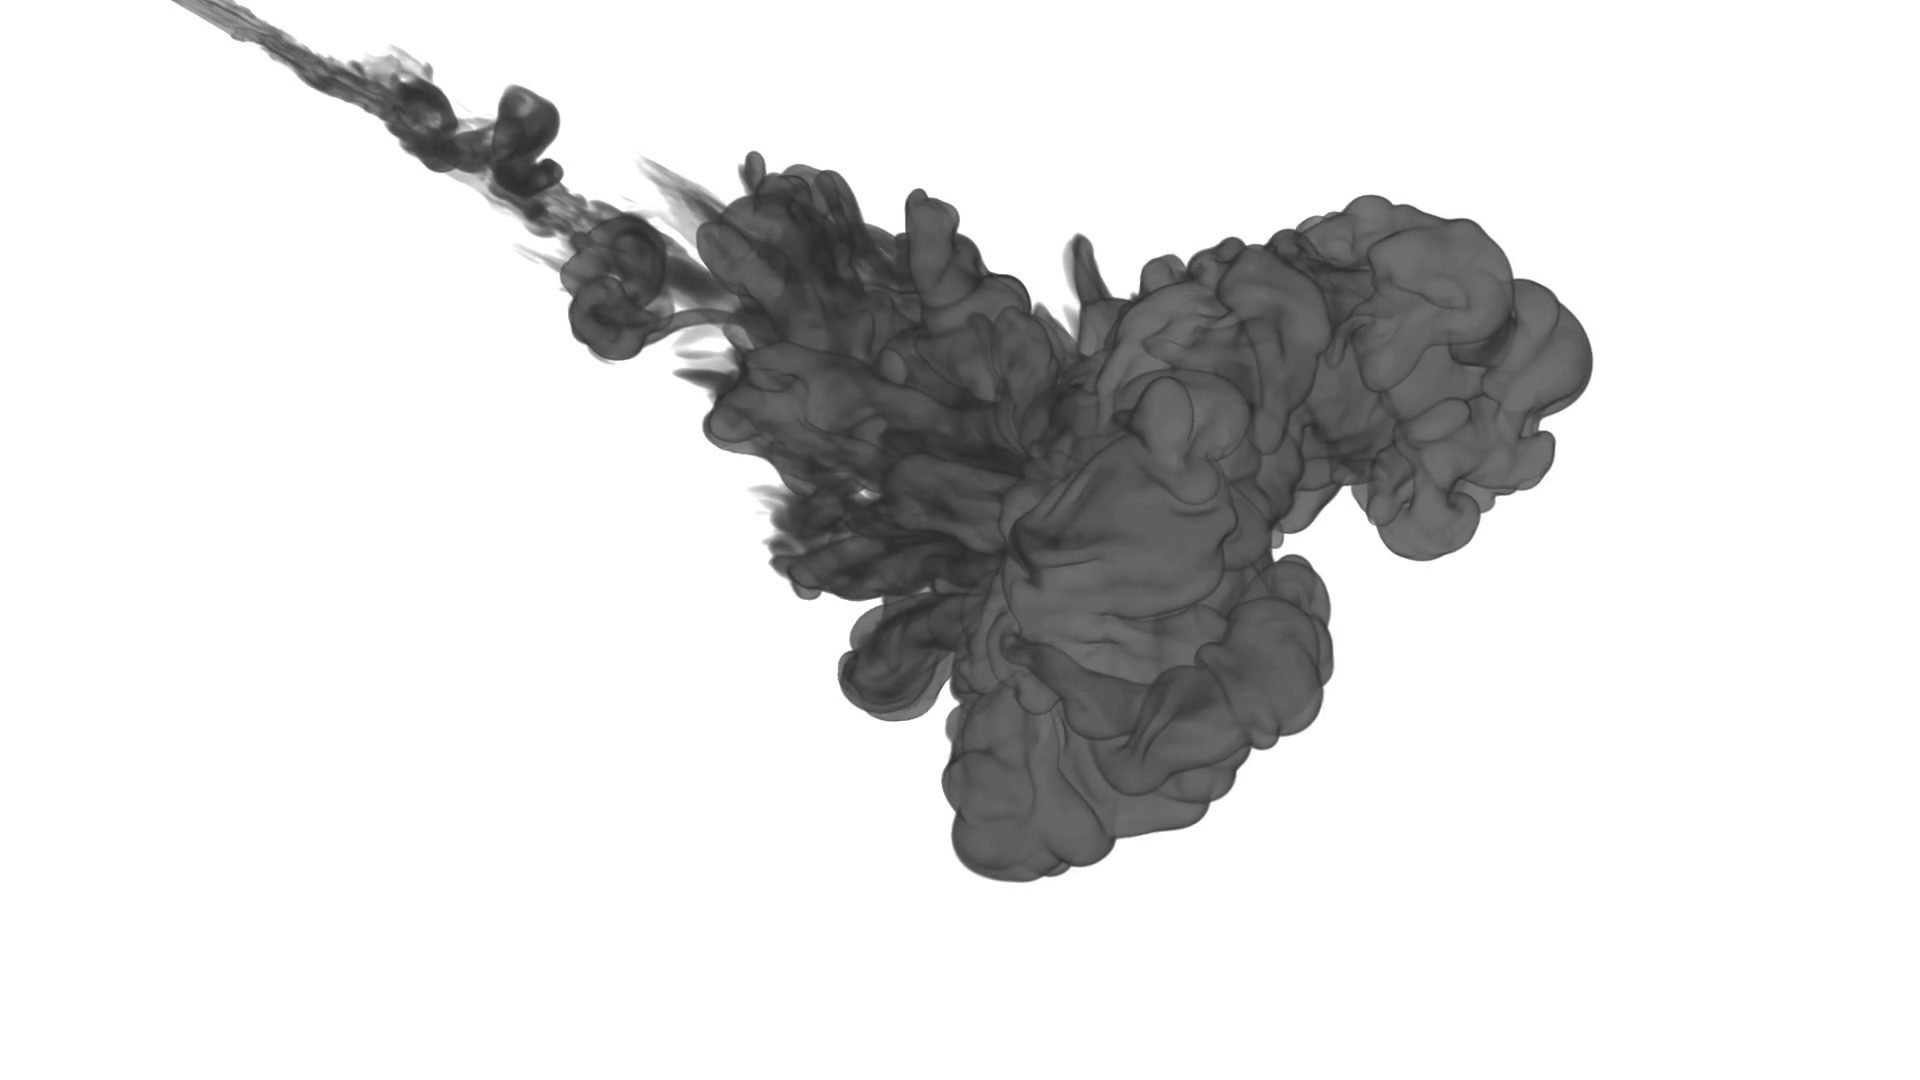 1920x1080 Ink Background For Compositing. Grey Smoke Or Ink In Water Series